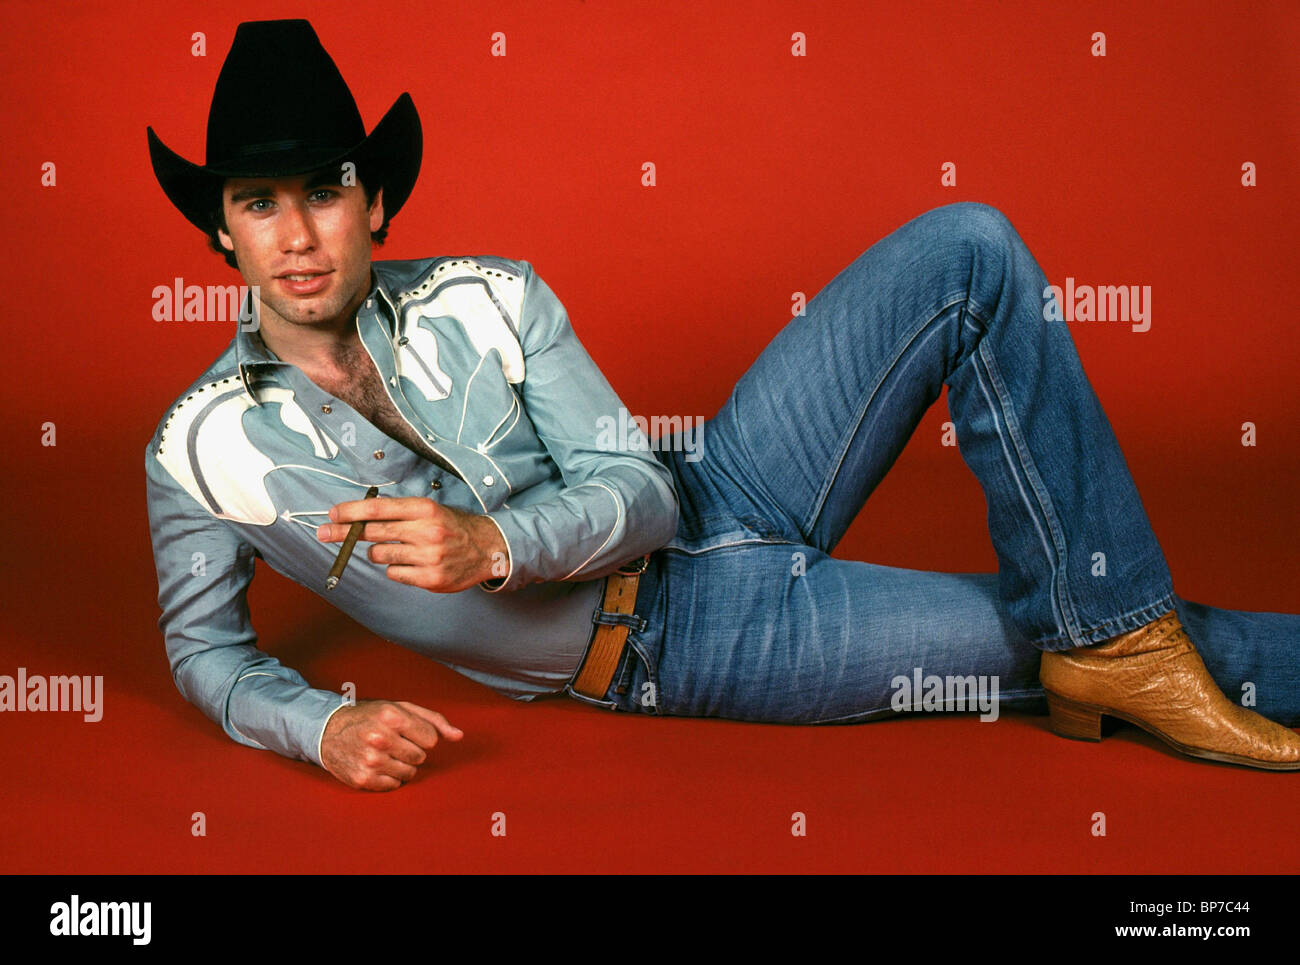 Urban Cowboy Stock Photos   Urban Cowboy Stock Images - Alamy 9e00ffef084